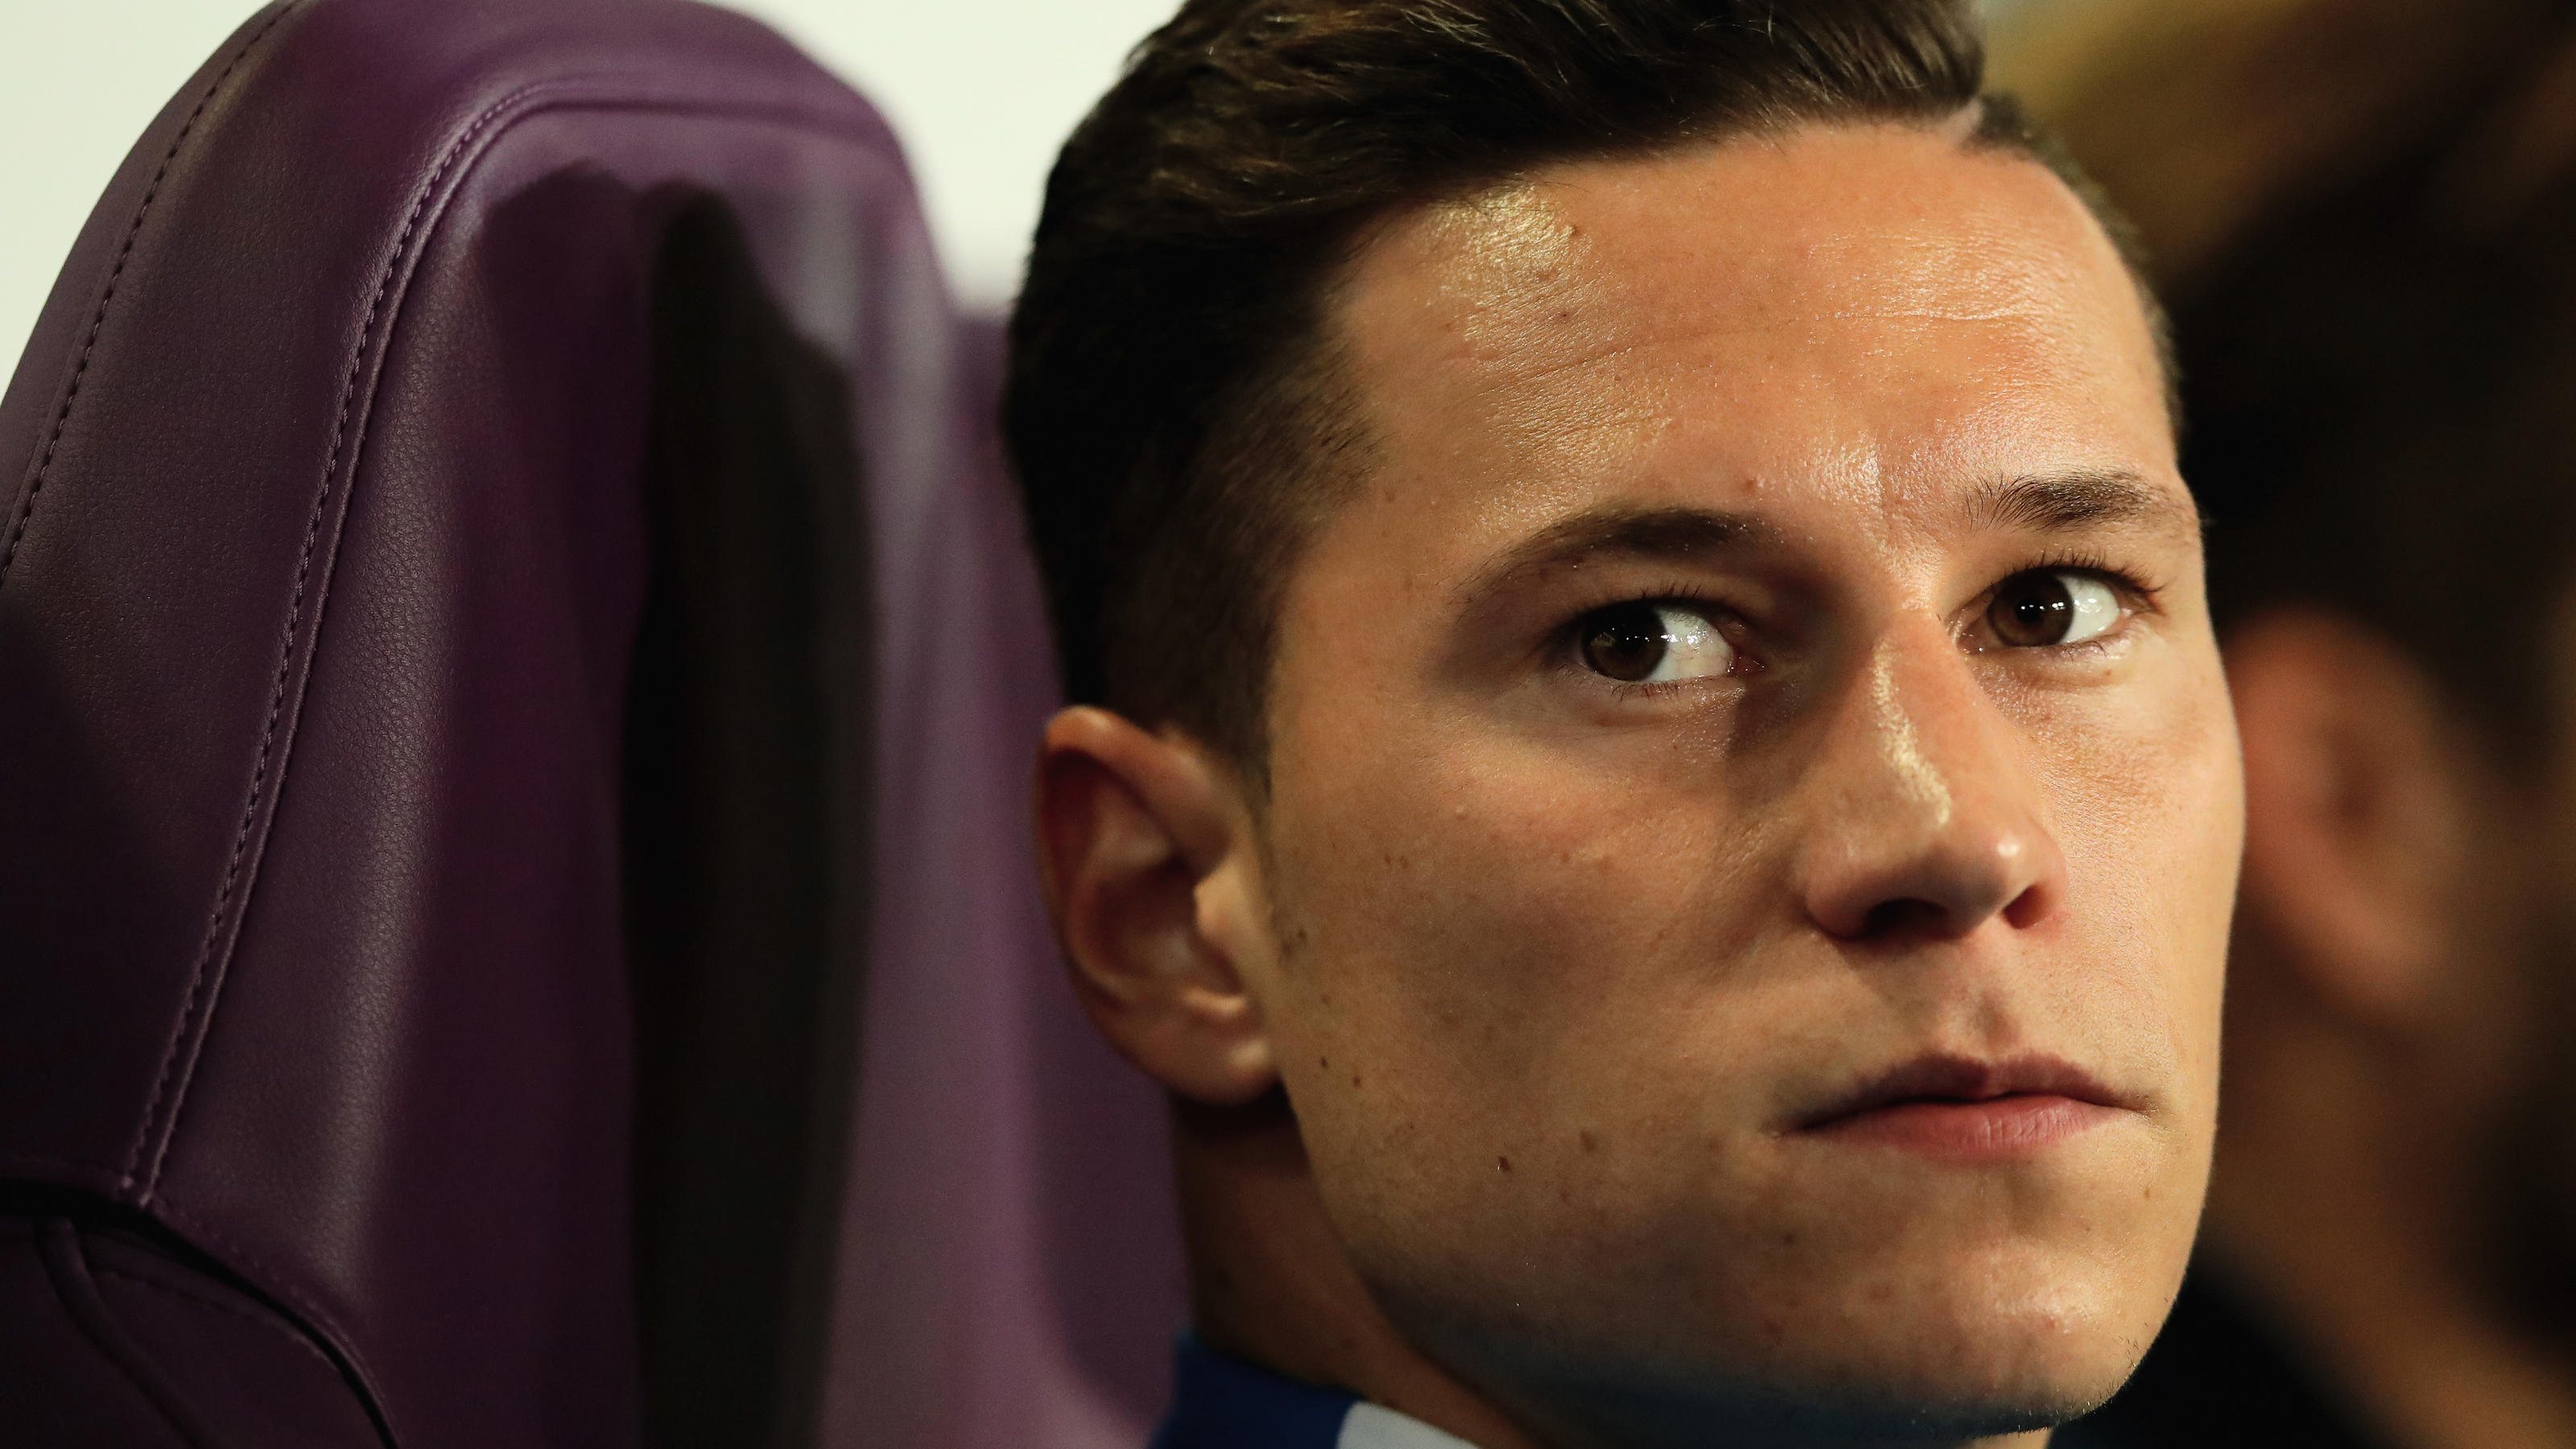 BRUSSELS, BELGIUM - OCTOBER 18: Julian Draxler of PSG looks on from the bench prior to the UEFA Champions League group B match between RSC Anderlecht and Paris Saint-Germain at Constant Vanden Stock Stadium on October 18, 2017 in Brussels, Belgium.